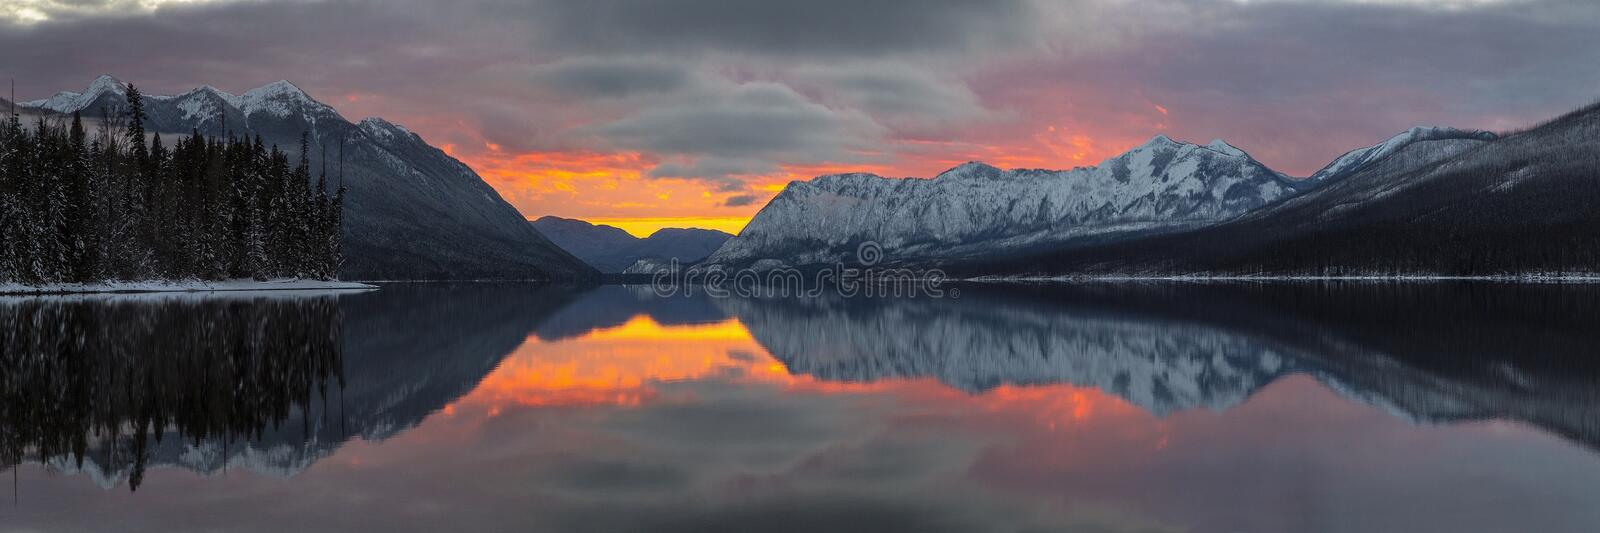 Reflection of Mountains in Lake during Sunset royalty free stock images